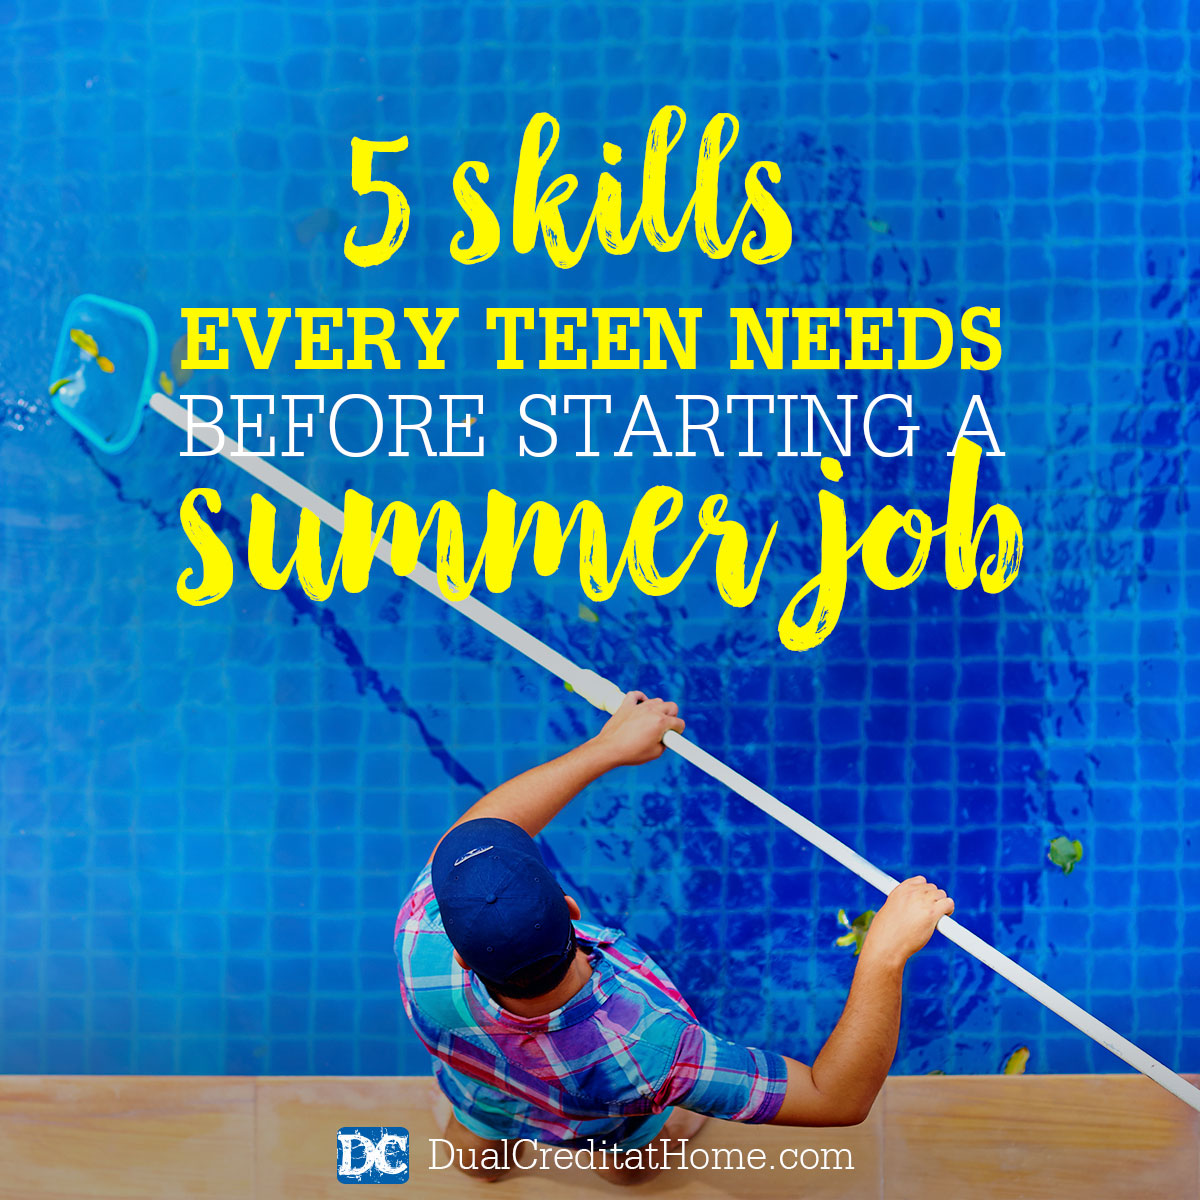 5 Skills Every Teen Needs Before Starting Summer Job